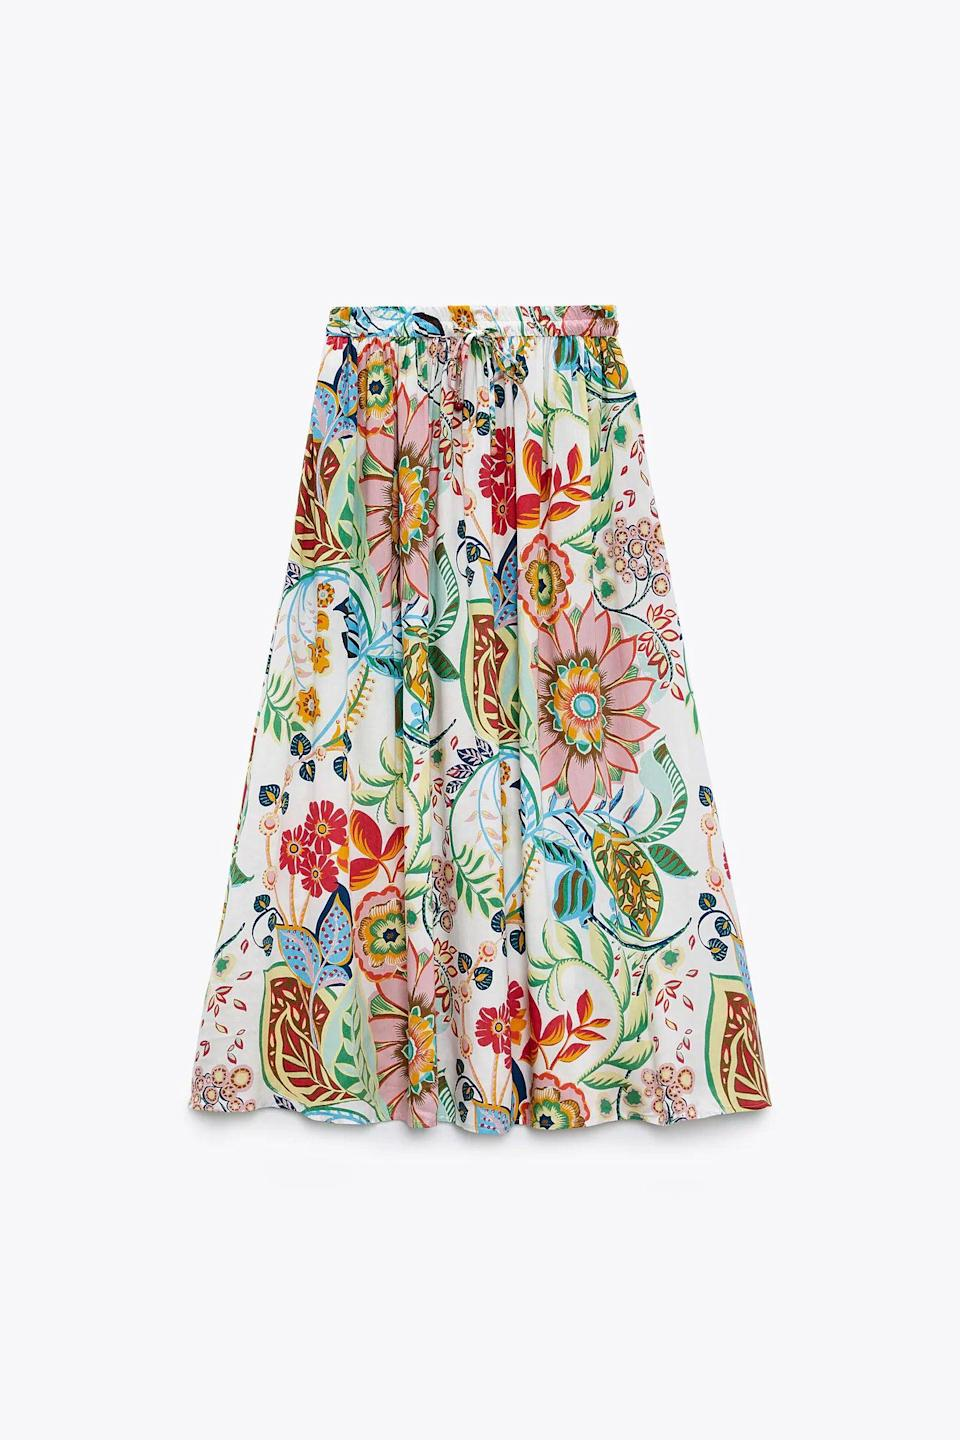 """<h2>Zara Floral Printed Skirt</h2><br>Another wanderlust-centered comeback that took purchase place in May: the long skirt. As part of Emily Ruane's guide to <a href=""""https://refinery29.com/en-us/travel-outfits"""" rel=""""nofollow noopener"""" target=""""_blank"""" data-ylk=""""slk:travel outfits"""" class=""""link rapid-noclick-resp"""">travel outfits</a> that will make you the main character at the airport, Zara's floral skirt became the choice buy for <em>The Gamine</em> archetype. From a more tangible (aka practical) standpoint, printed skirts are an easy way to dress up your jet-set attire without sacrificing comfort; they offer leg coverage minus the constriction of pants, they're public-bathroom-approved for pulling up to avoid fabric touching the gross ground, AND they can be seamlessly worn from plane to out on the town.<br><br><em>Shop <strong><a href=""""https://www.zara.com/us/en/floral-printed-skirt-p03090199.html"""" rel=""""nofollow noopener"""" target=""""_blank"""" data-ylk=""""slk:Zara"""" class=""""link rapid-noclick-resp"""">Zara</a></strong></em><br><br><strong>Zara</strong> Floral Printed Skirt, $, available at <a href=""""https://go.skimresources.com/?id=30283X879131&url=https%3A%2F%2Fwww.zara.com%2Fus%2Fen%2Ffloral-printed-skirt-p03090199.html%3Fv1%3D103366838%26v2%3D1718788"""" rel=""""nofollow noopener"""" target=""""_blank"""" data-ylk=""""slk:Zara"""" class=""""link rapid-noclick-resp"""">Zara</a>"""